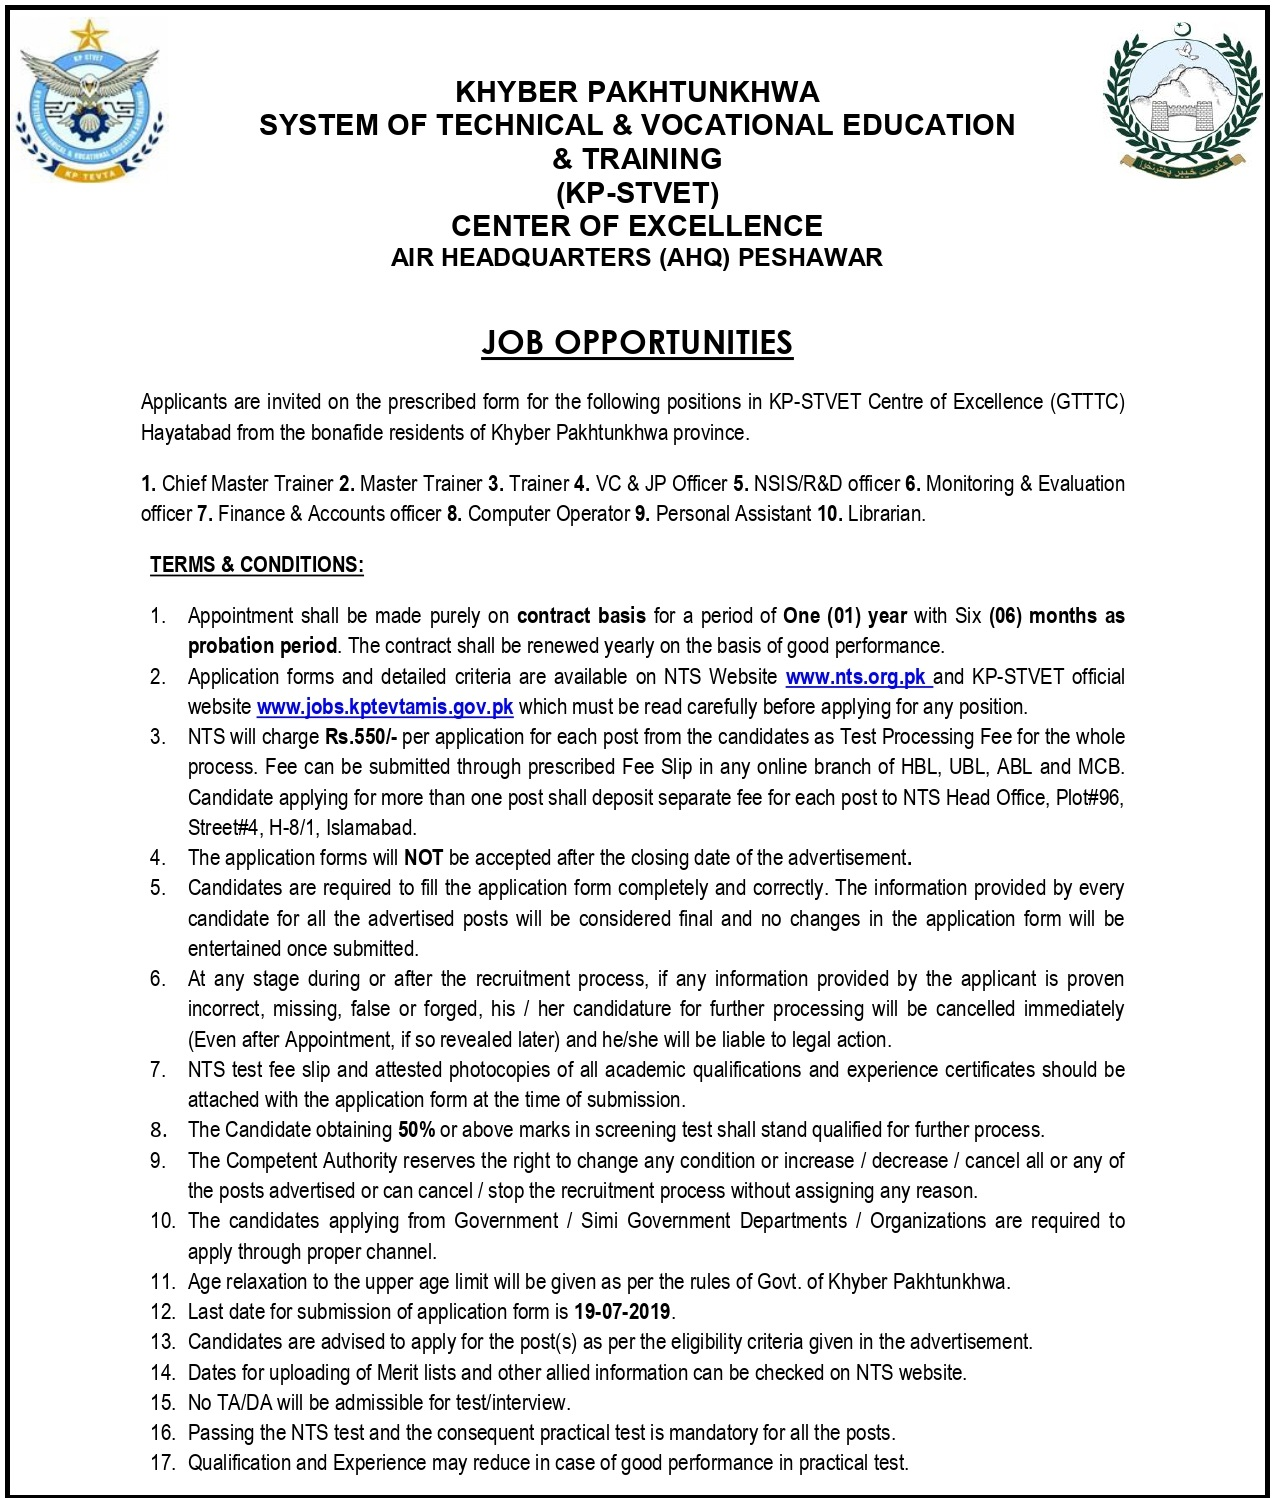 KPK System Of Technical And Vocatioinal Education And Training Jobs 2019 NTS Application Form